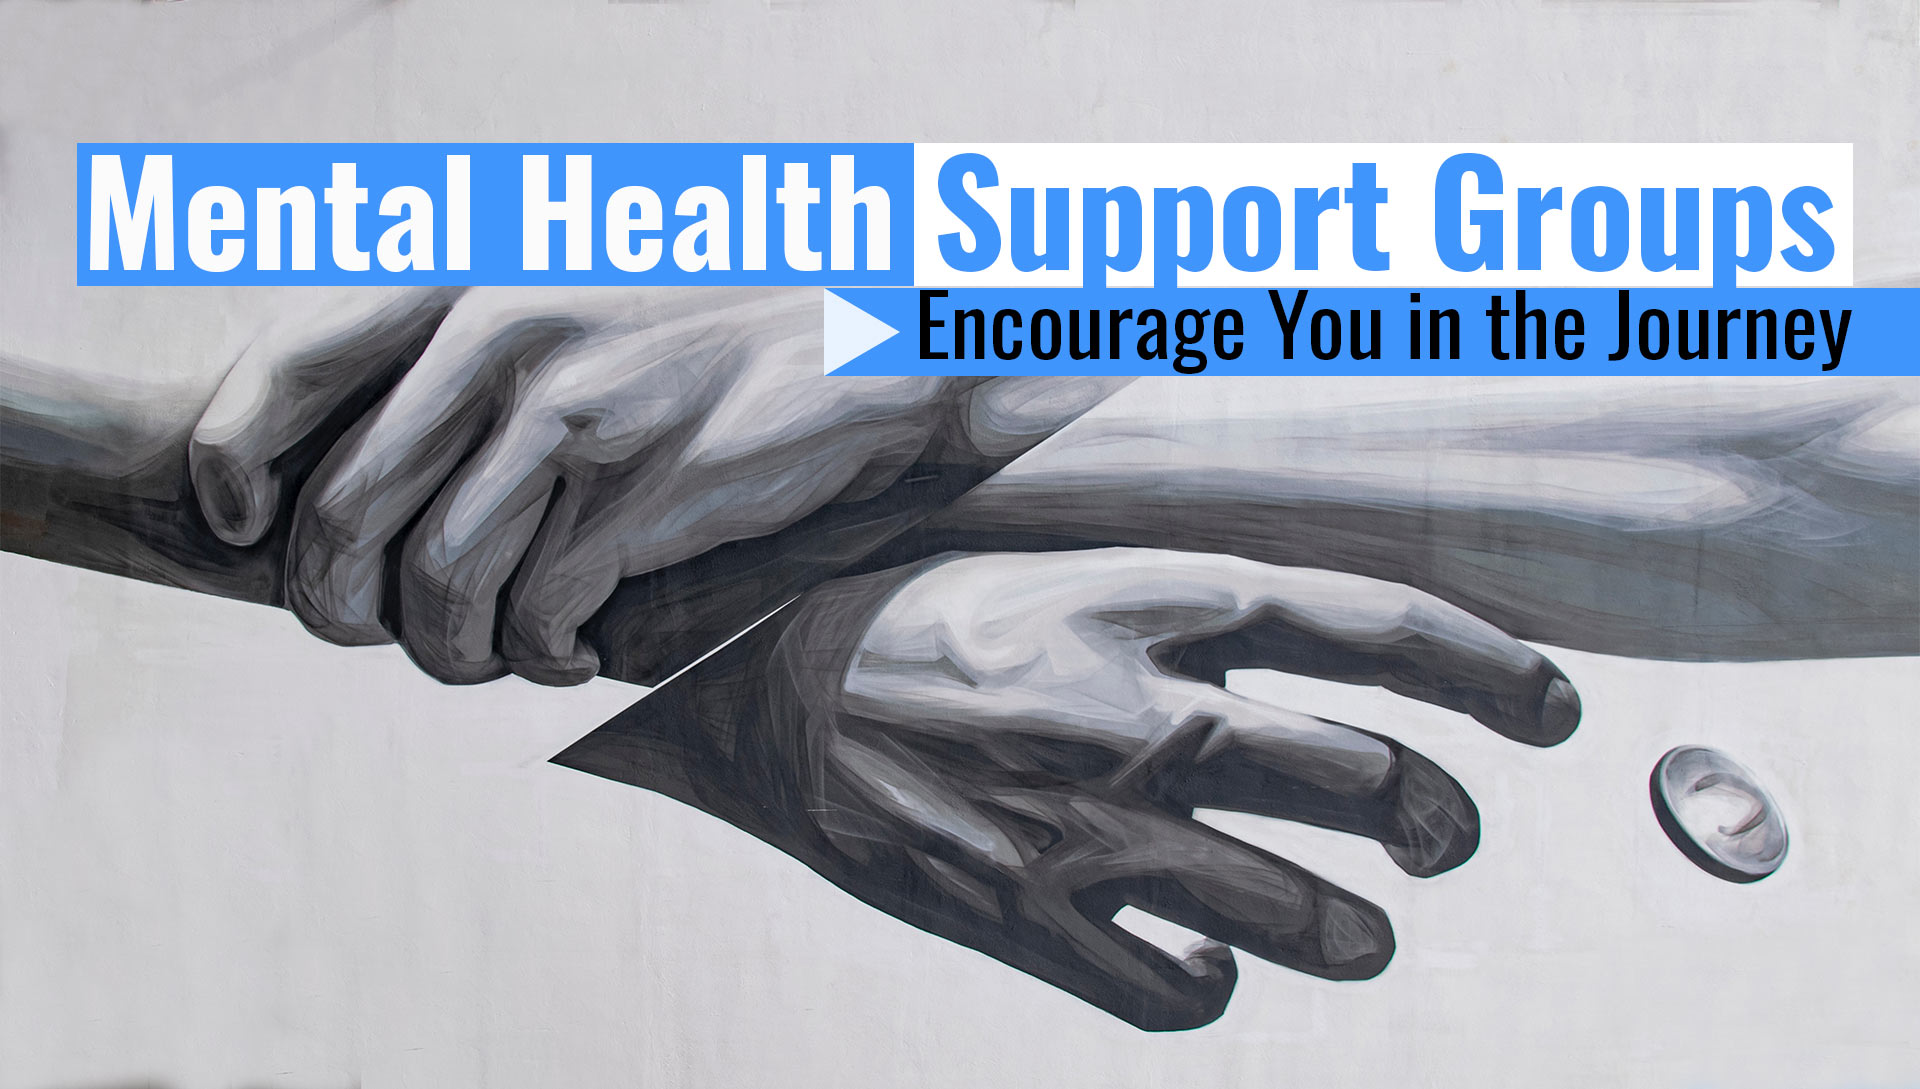 How Mental Health Support Groups Can Encourage You in the Journey